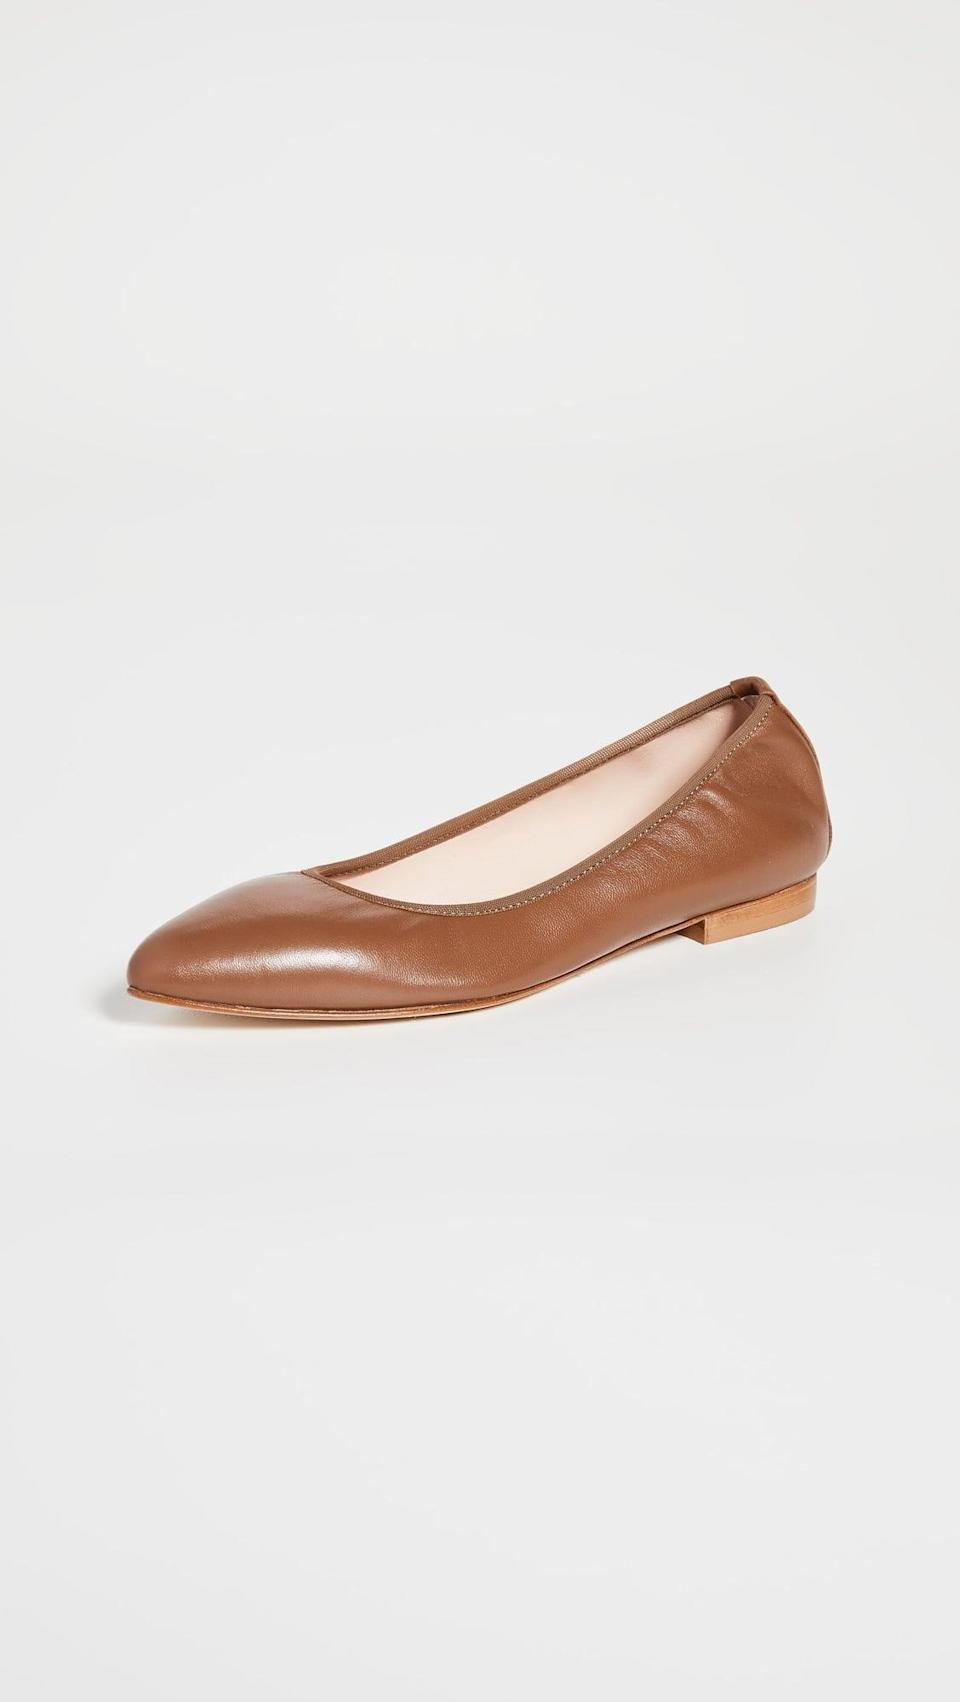 <p>These <span>Kahmune Kennedy Flats</span> ($200) feature a cushioned foot bed and elastic heel band, so you'll never tire of wearing them.</p>